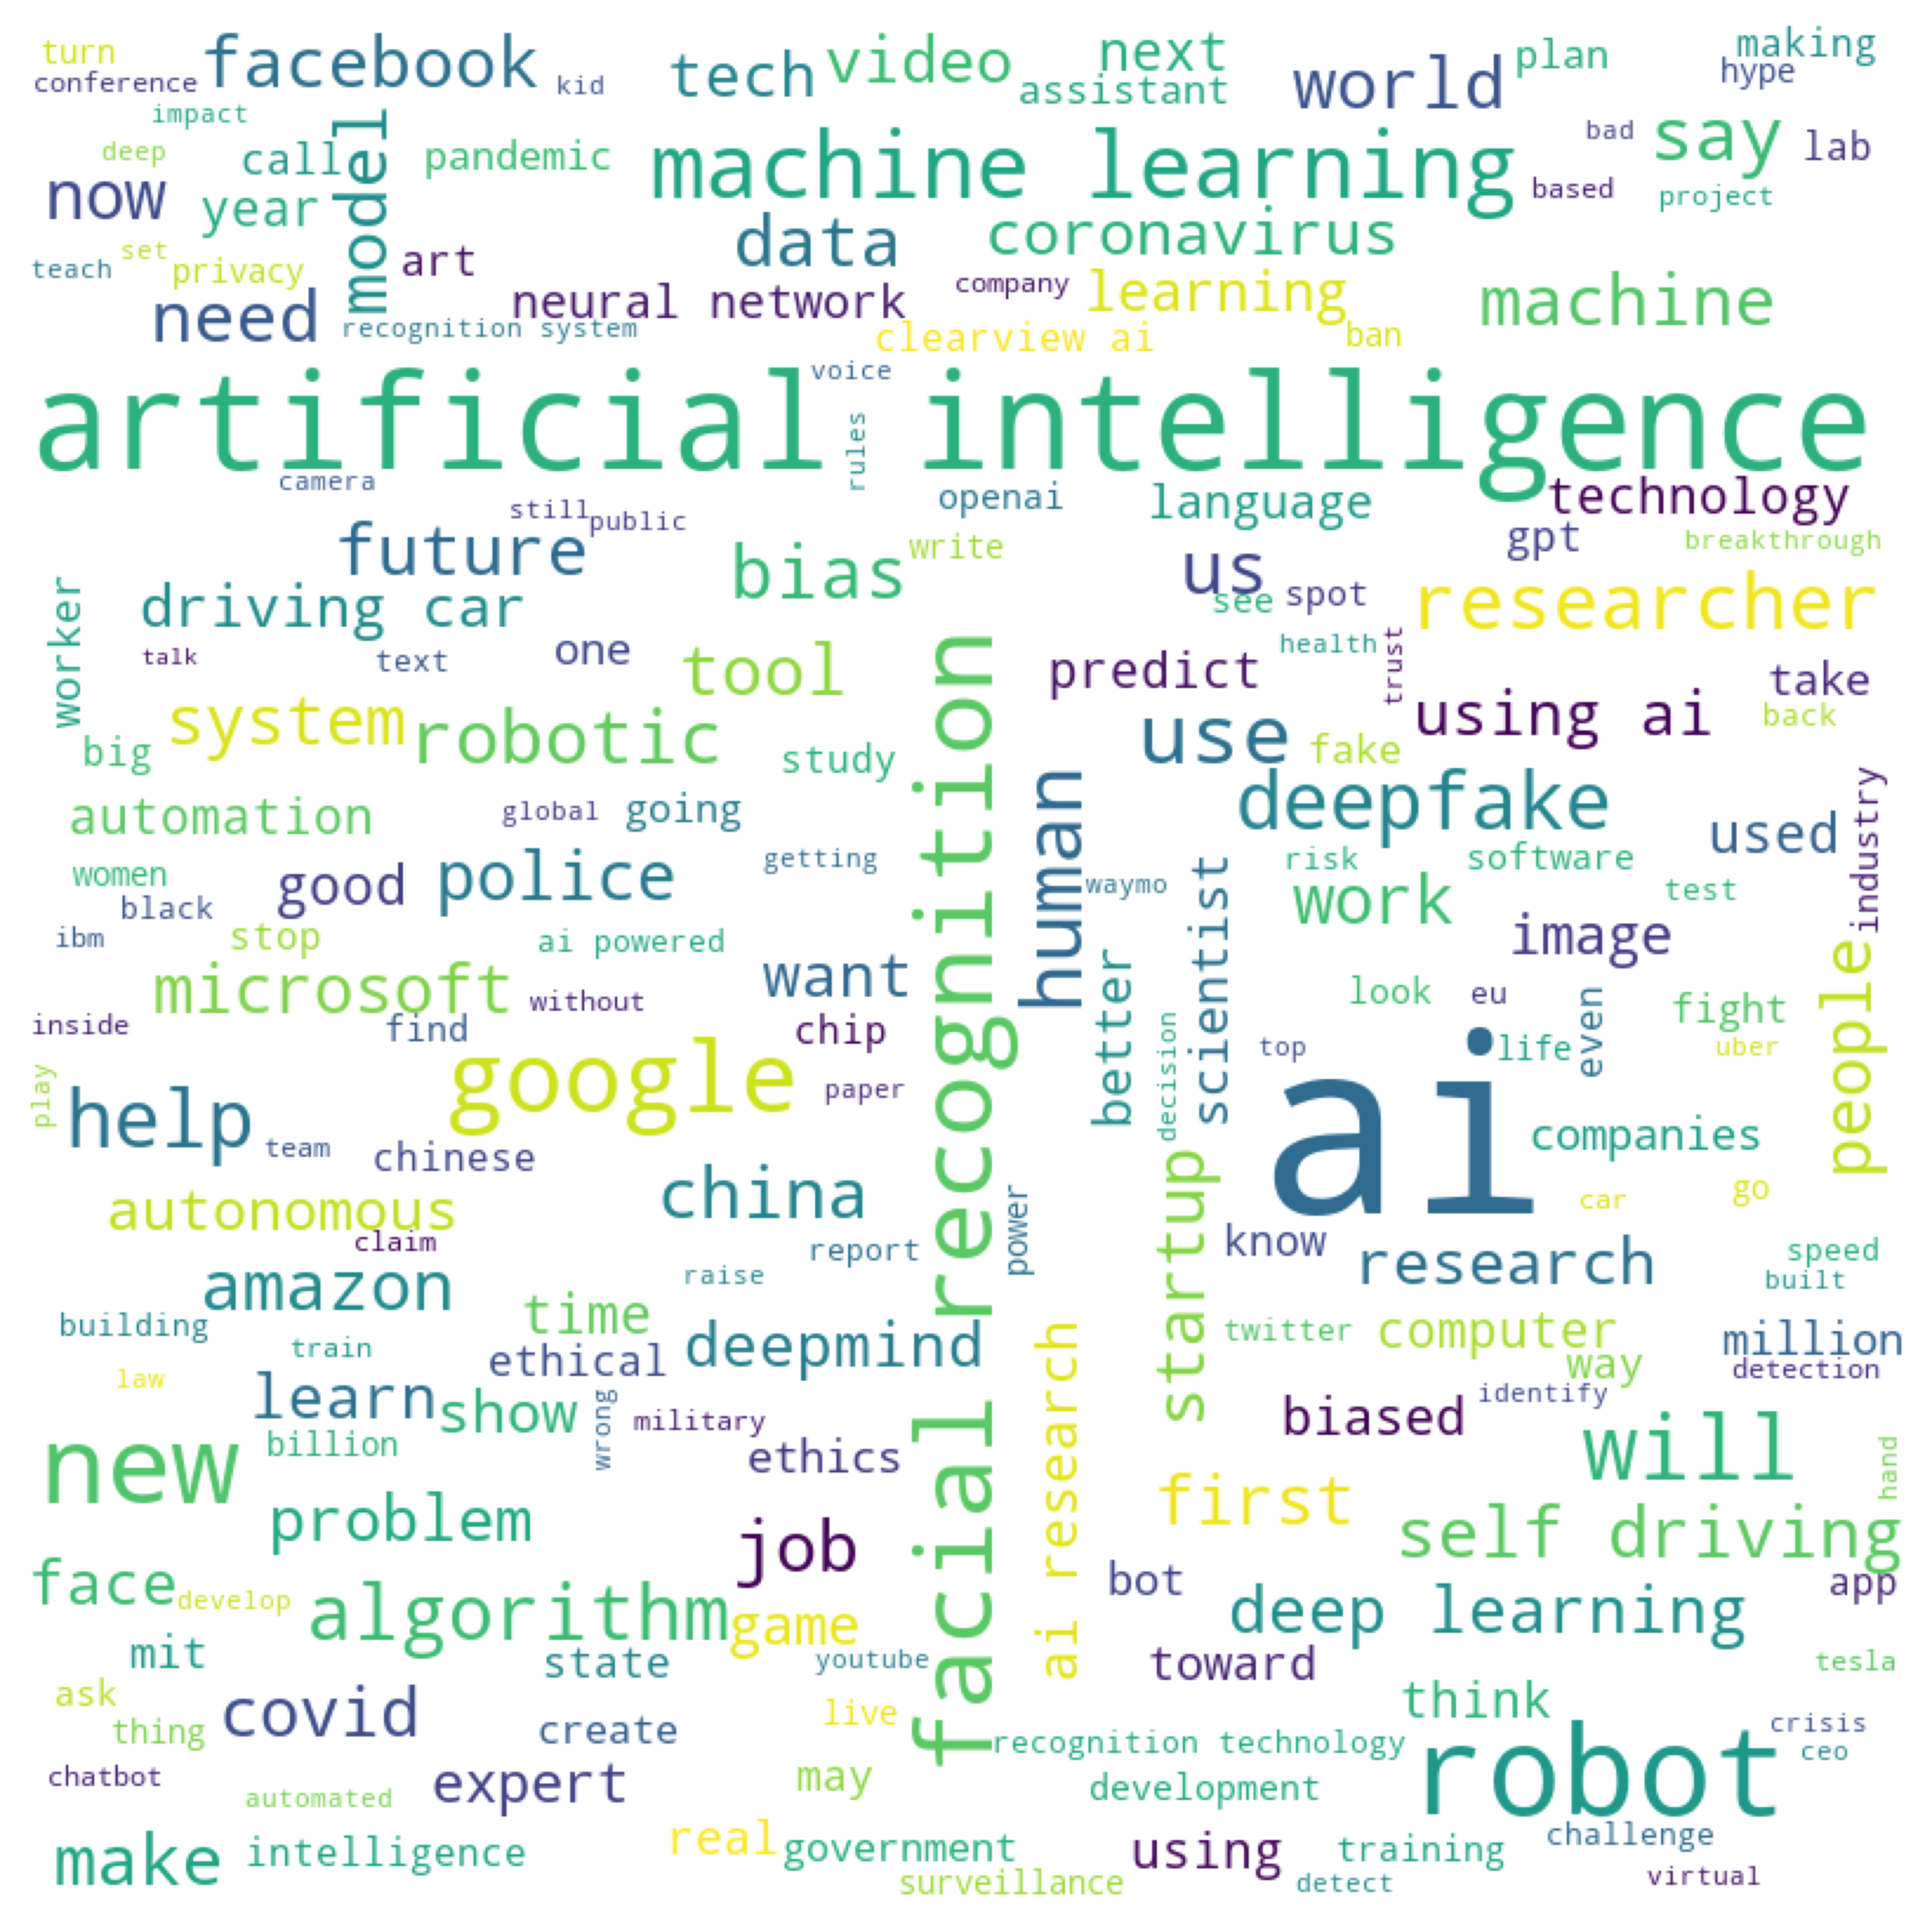 Analysis of 100 Weeks of Curated AI News